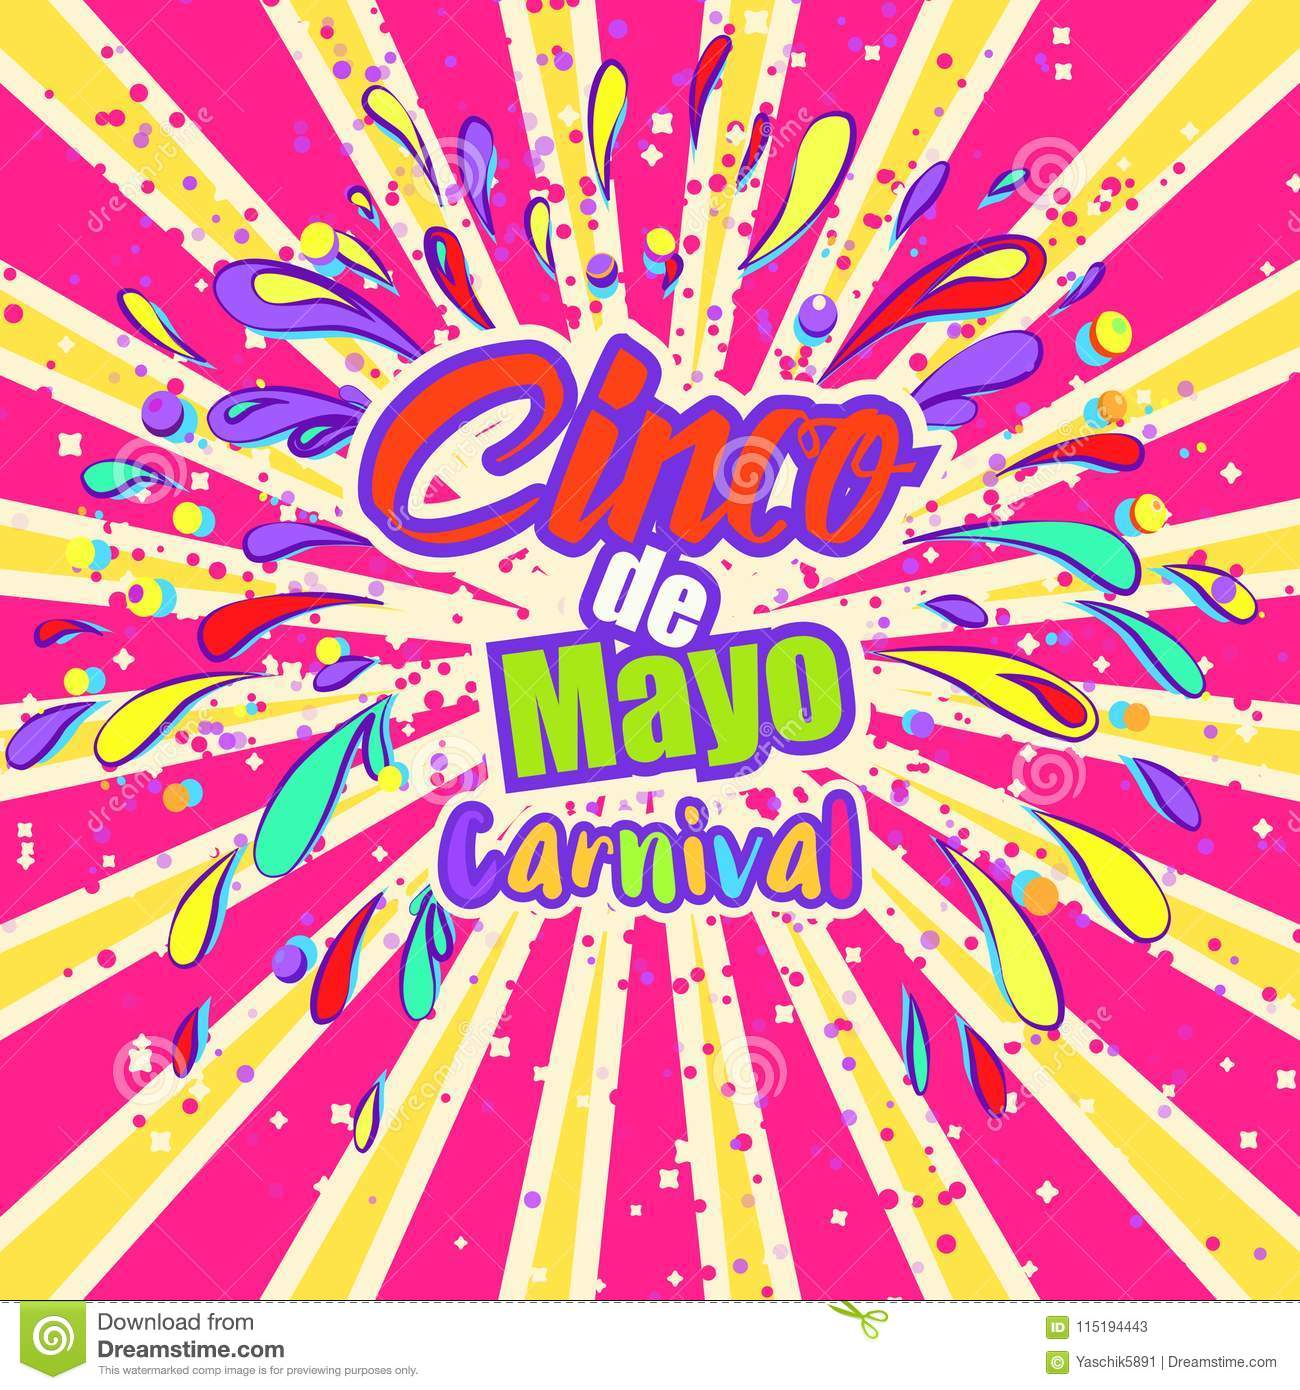 cinco de mayo celebration in mexico design element poster greeting card or brochure template - Mexico Brochure Template